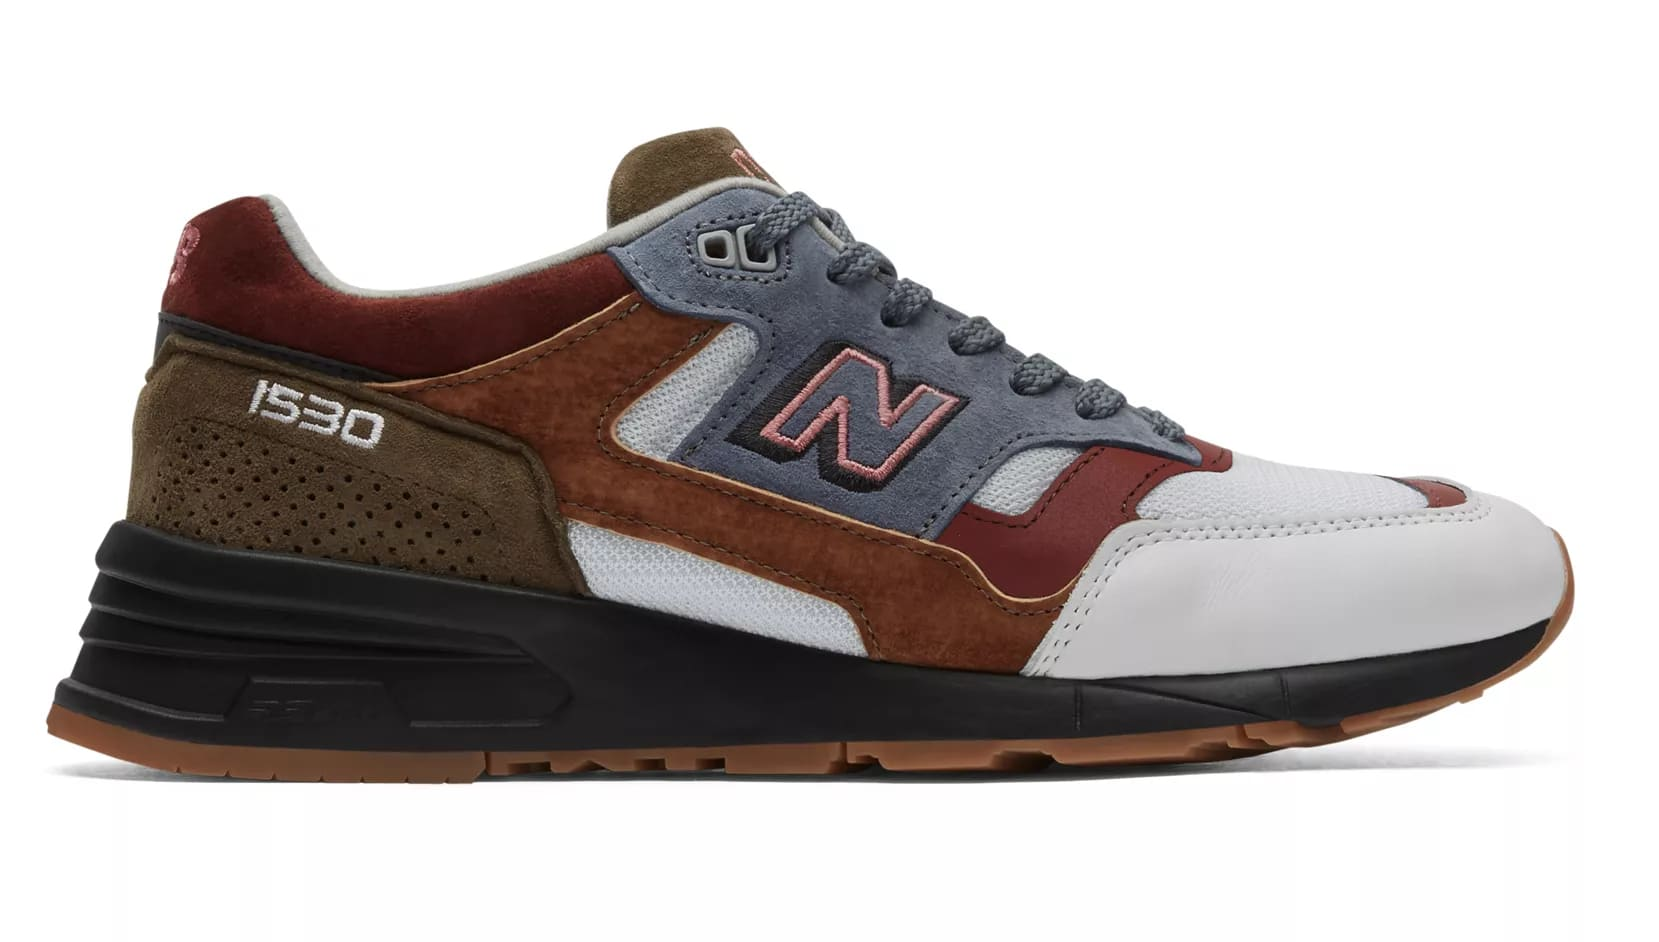 New Balance 1530 Made in UK Scarlet Stone